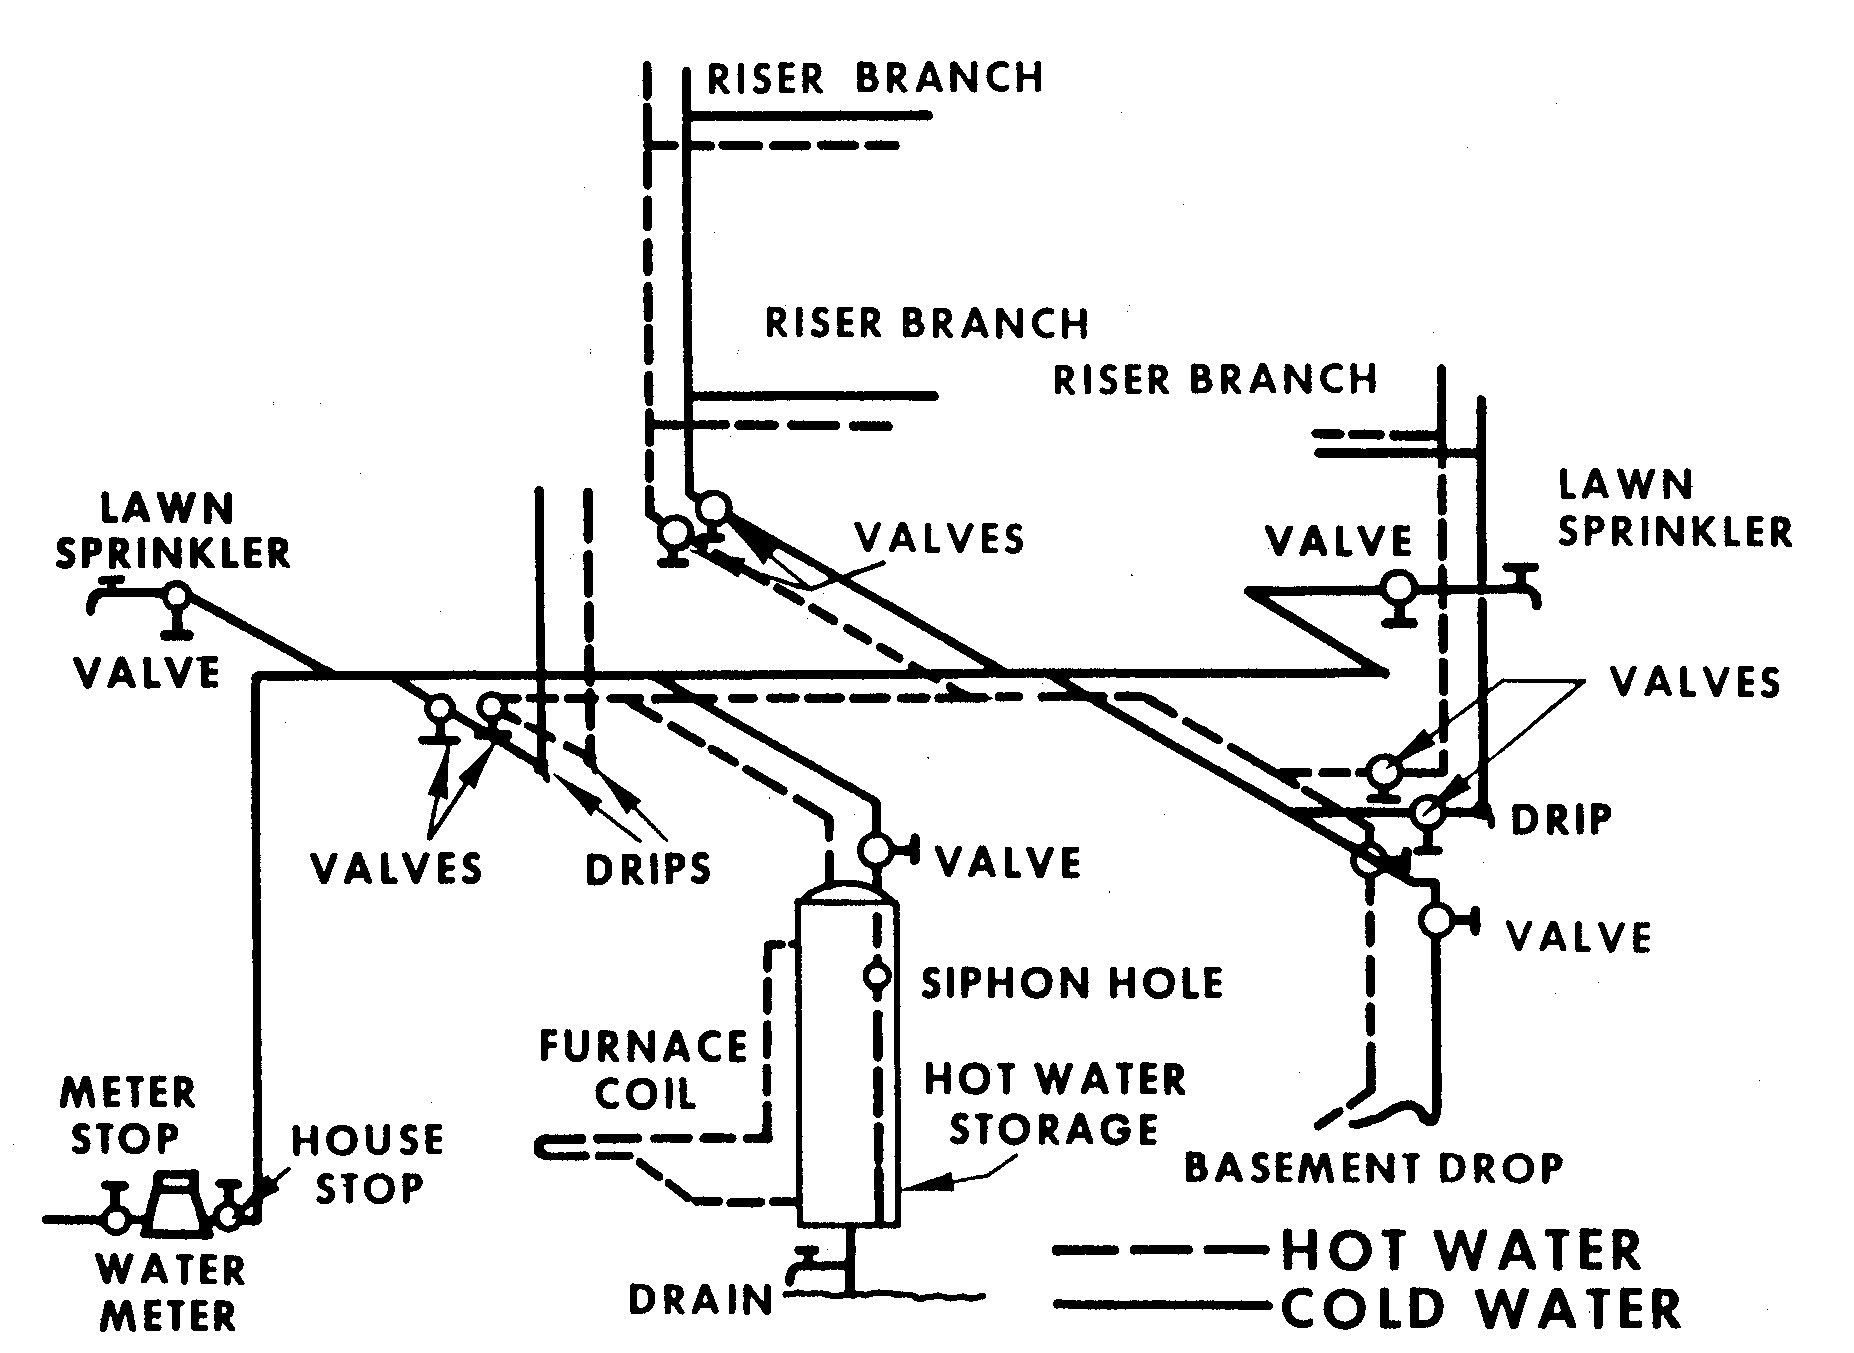 Figure 9.1. Typical Home Water System